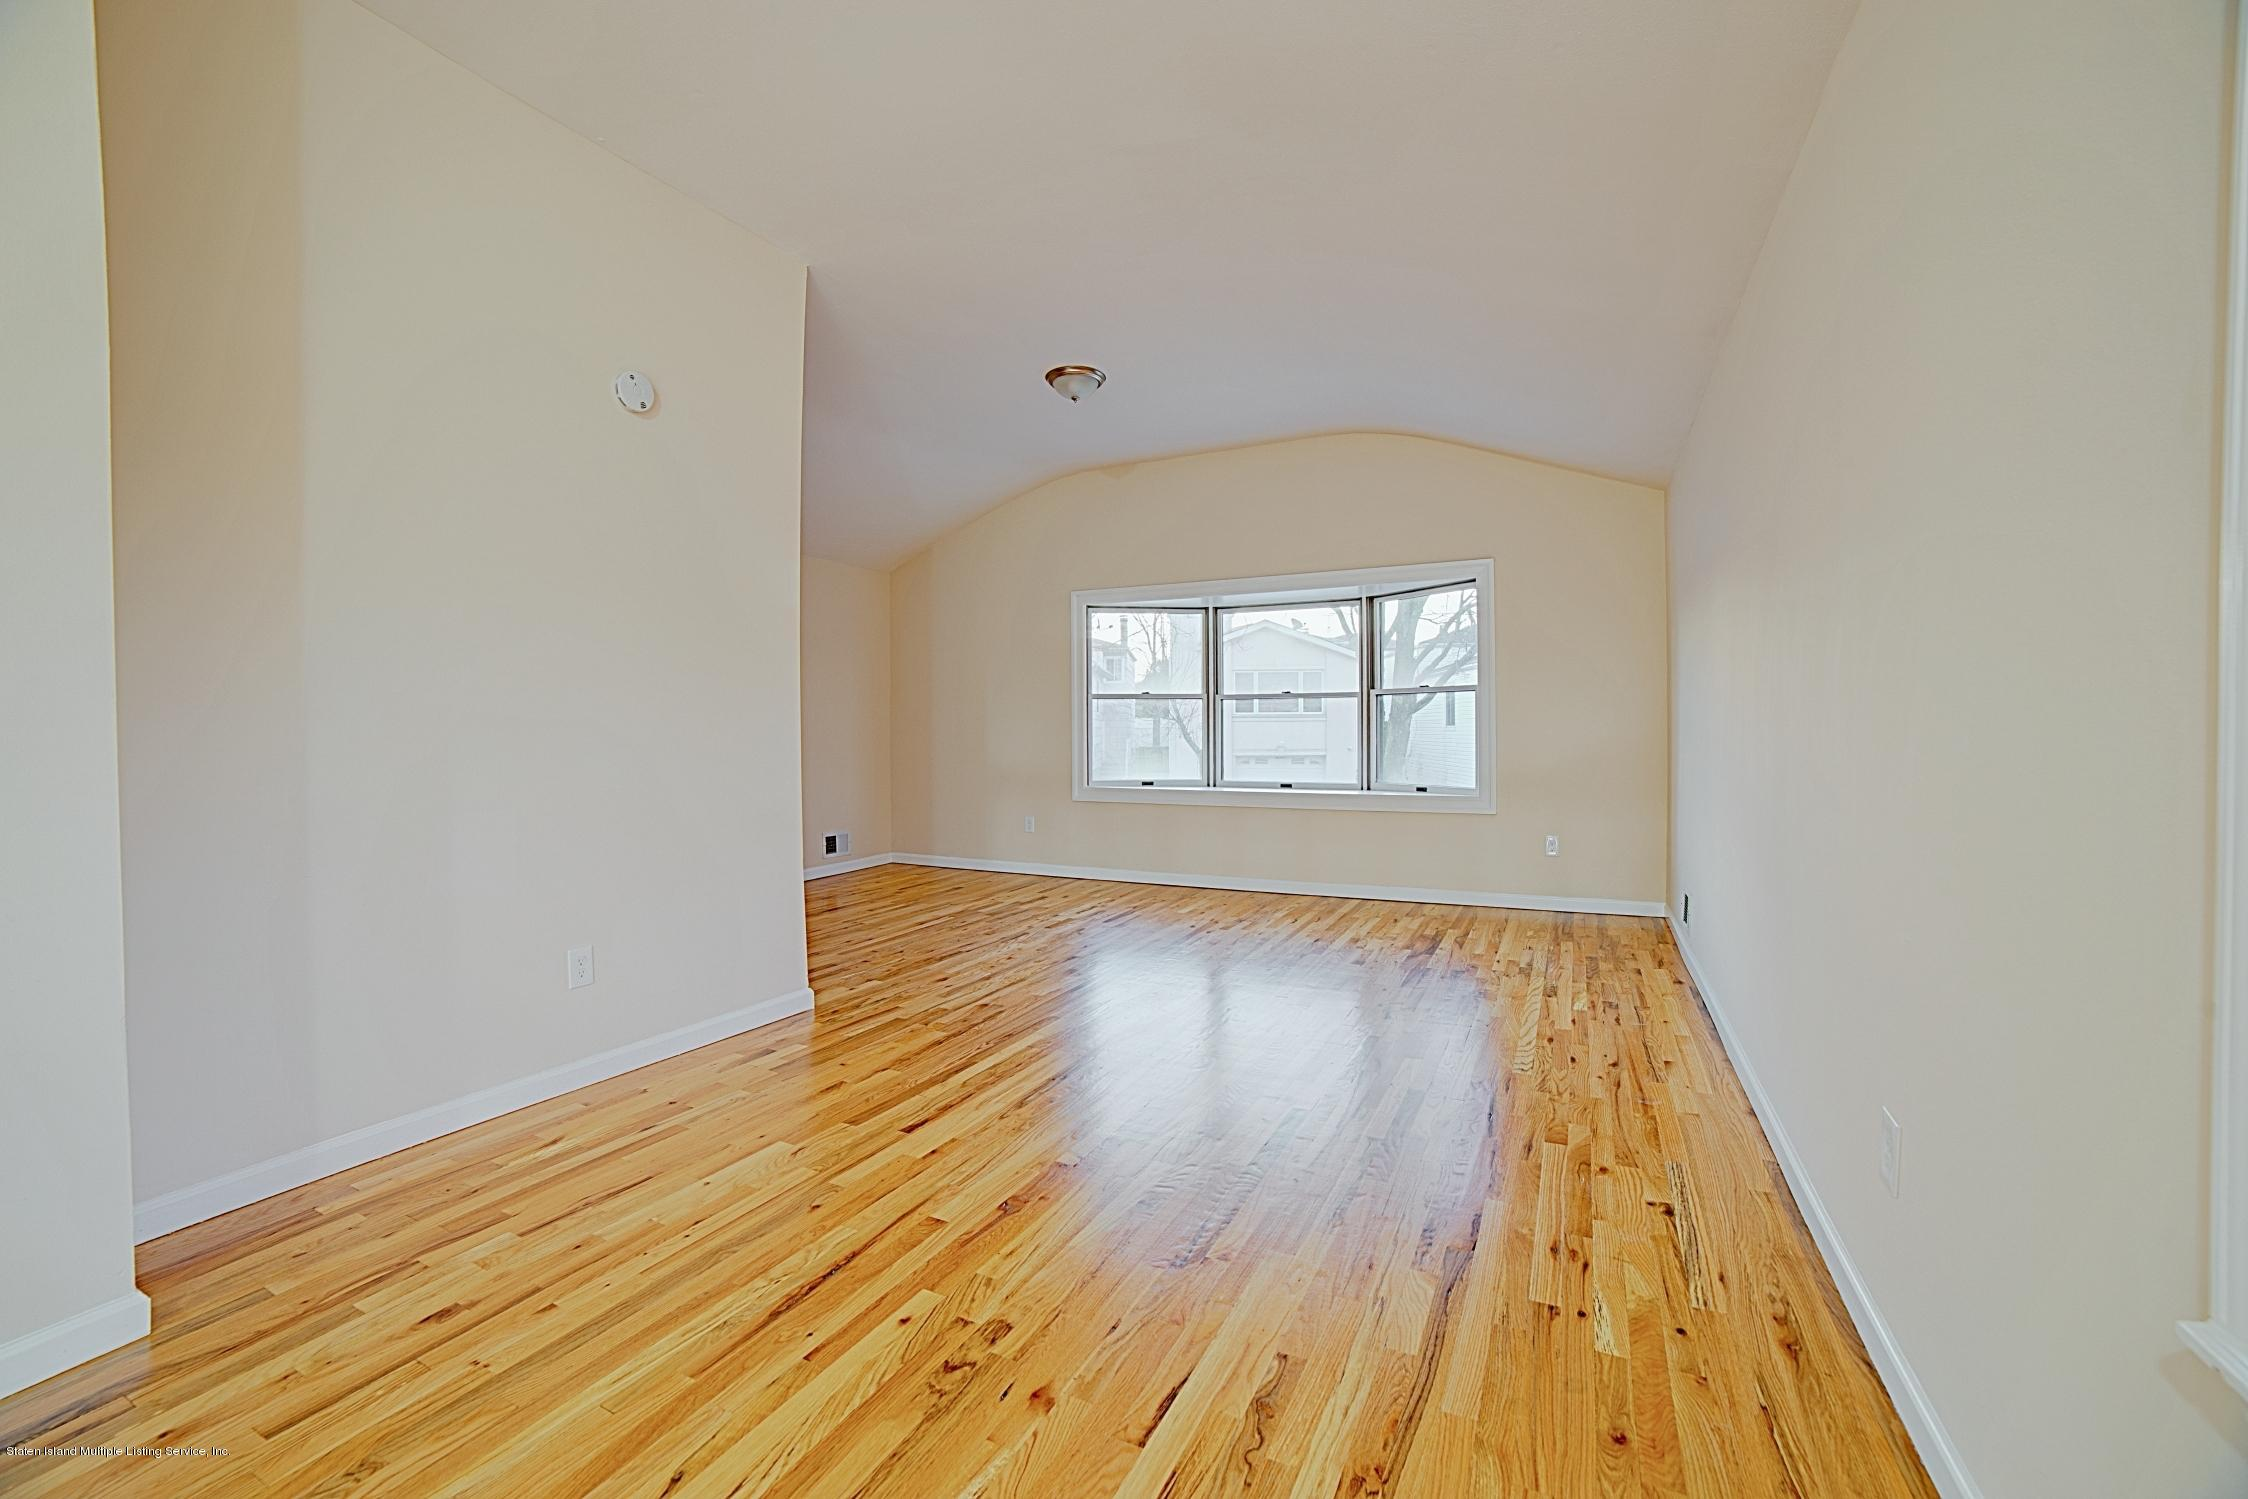 Single Family - Detached 87 Manchester Drive  Staten Island, NY 10312, MLS-1135150-7